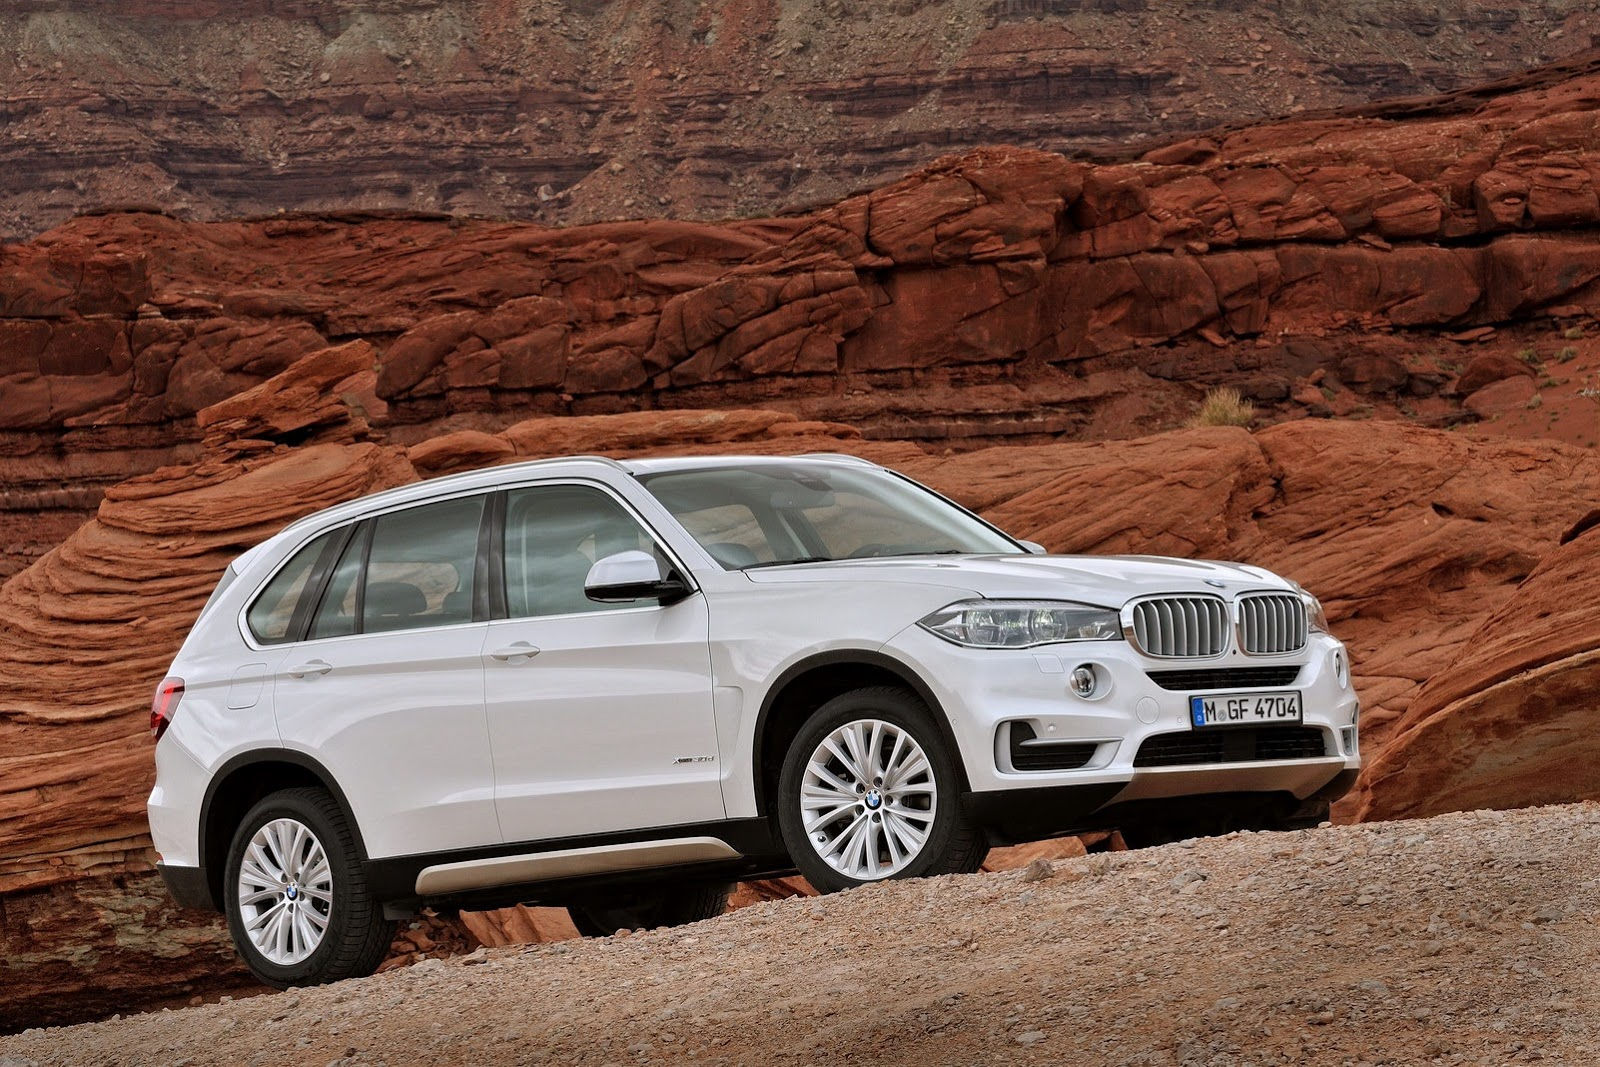 Bmw X5 Series 2019 Price In Pakistan Review Full Specs Images